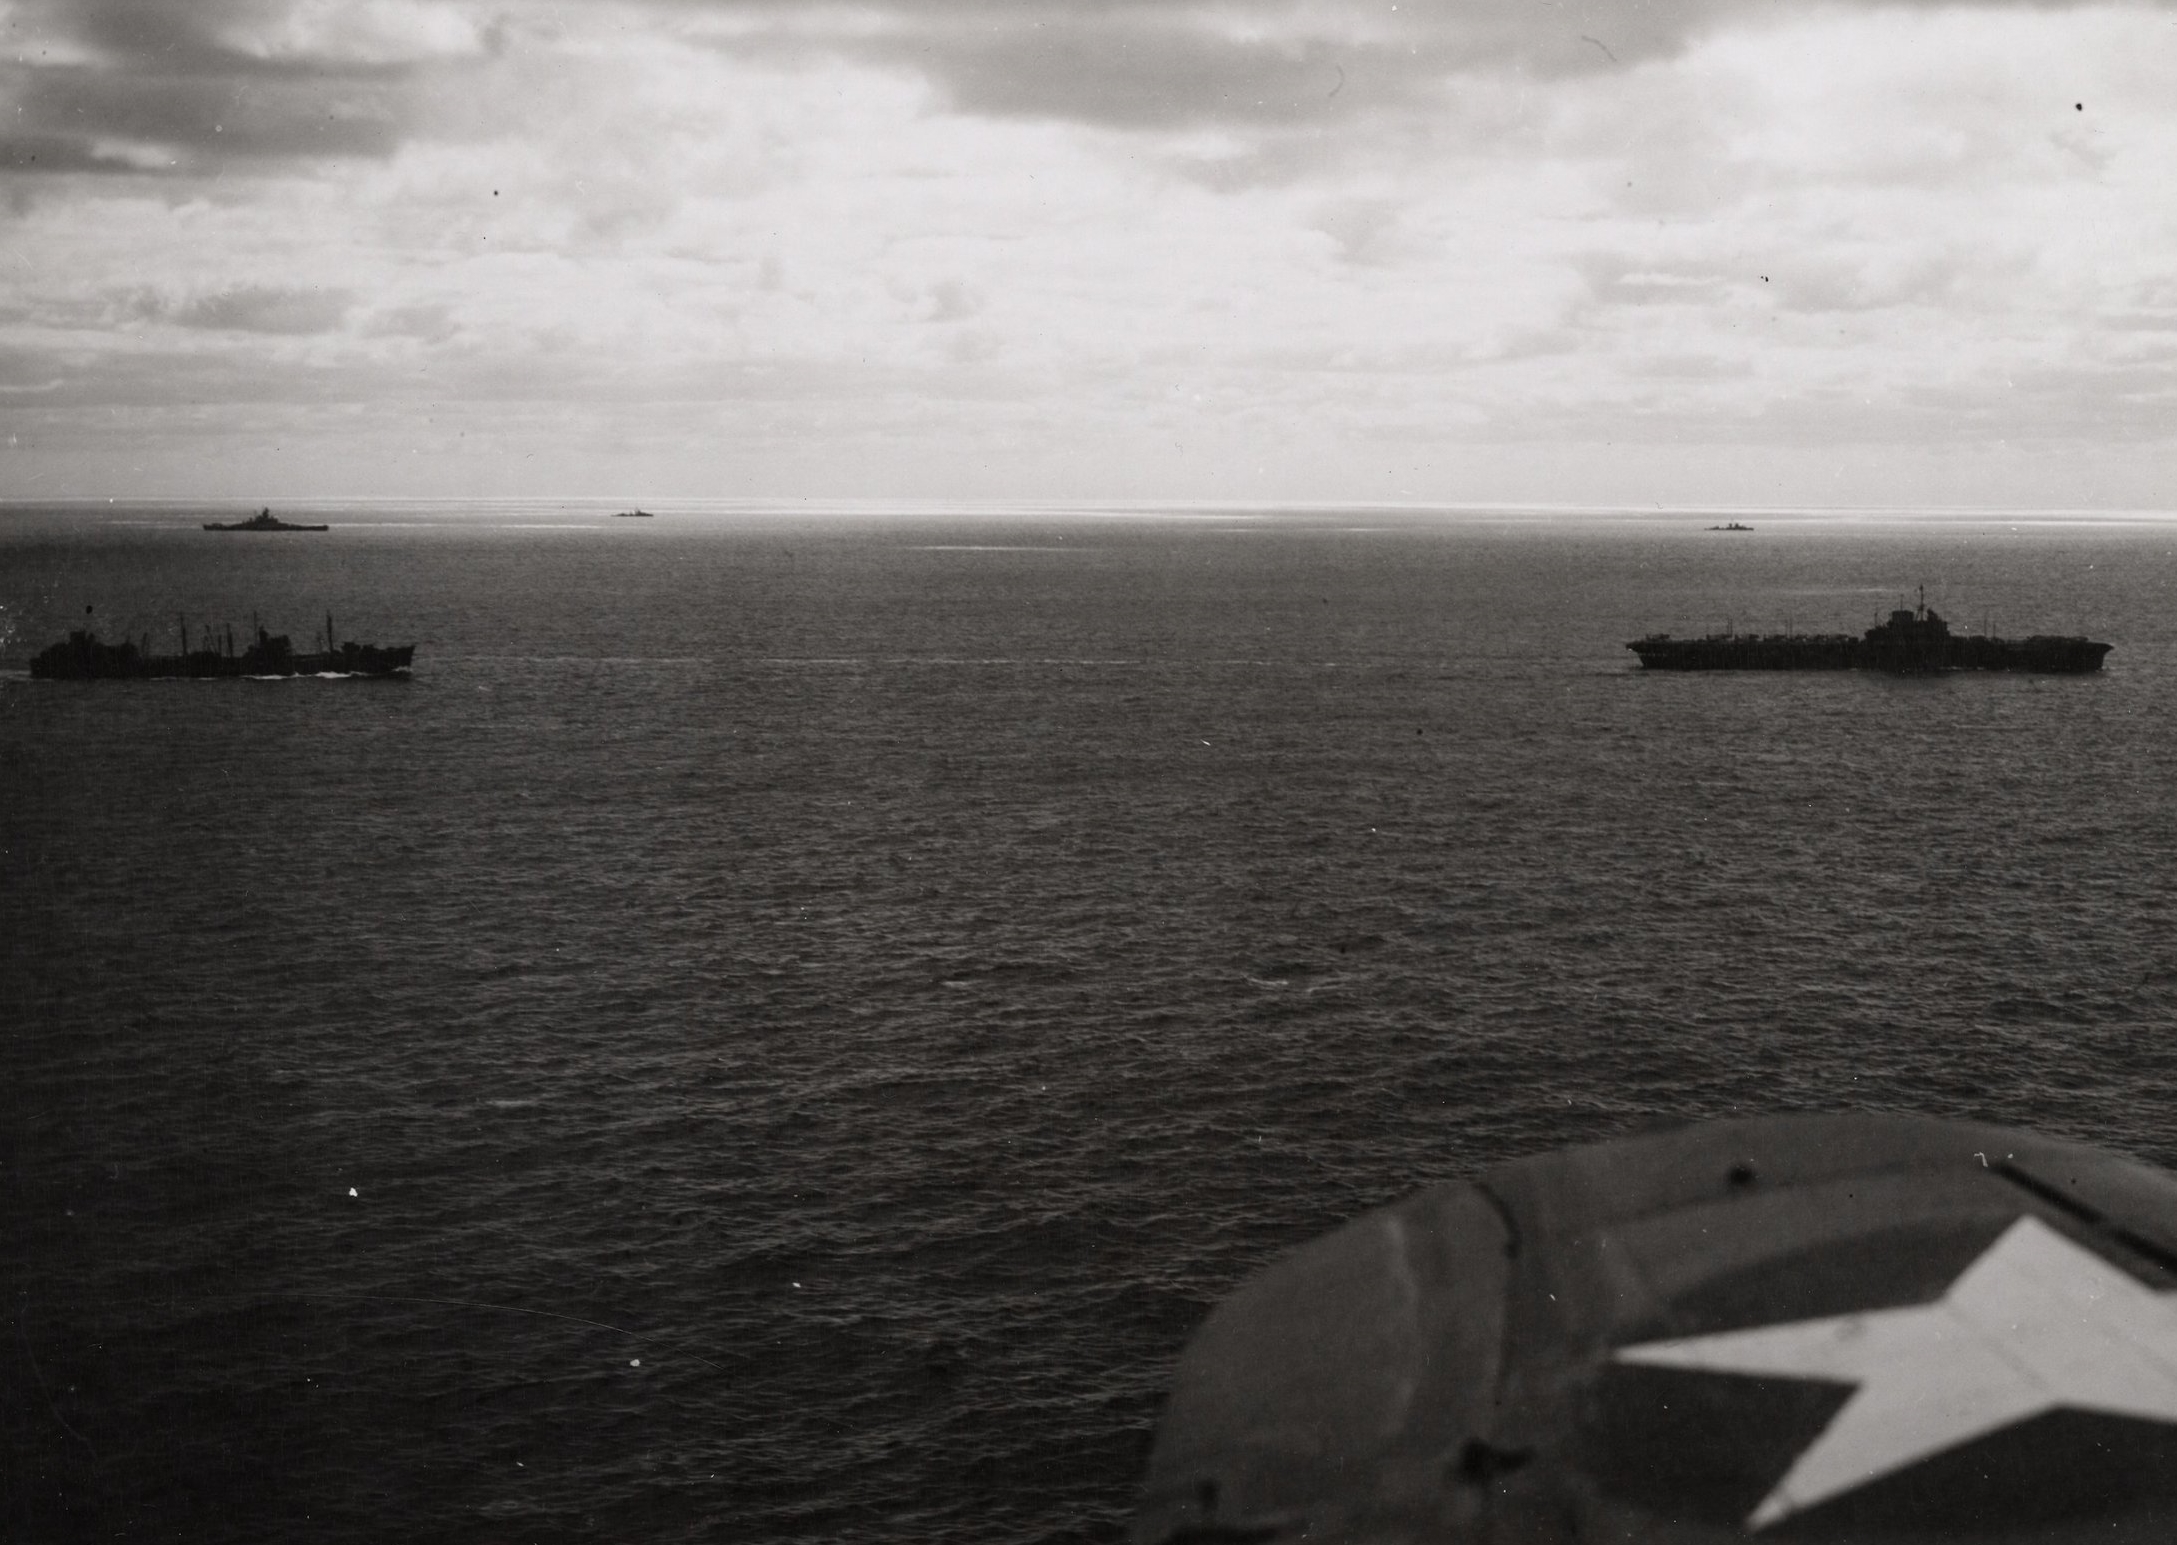 HMS VICTORIOUS at sea with the battleships, escort and supply ships of Task Force 14